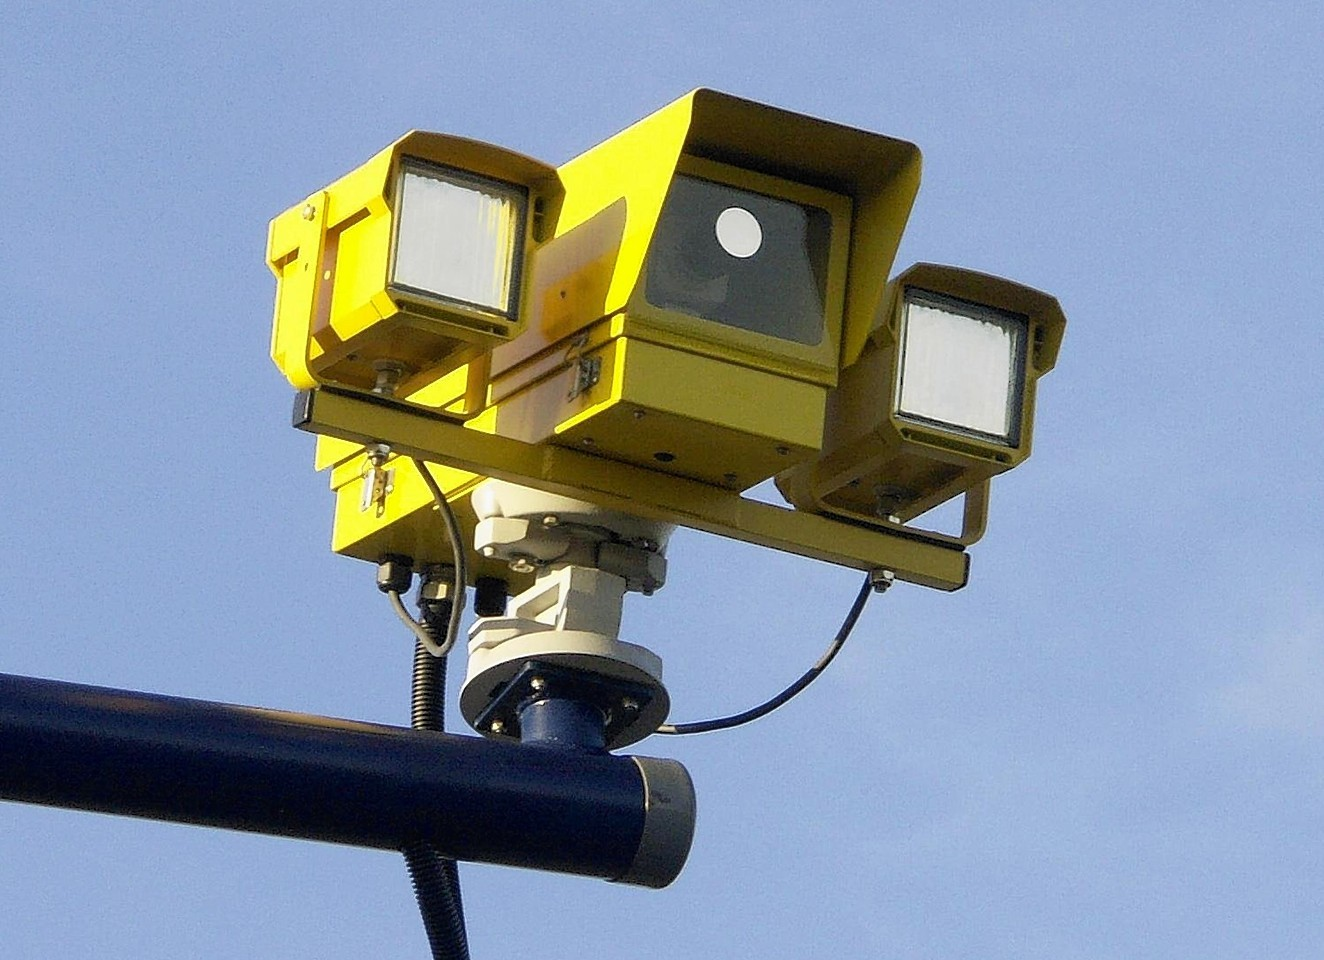 The A90 average speed cameras